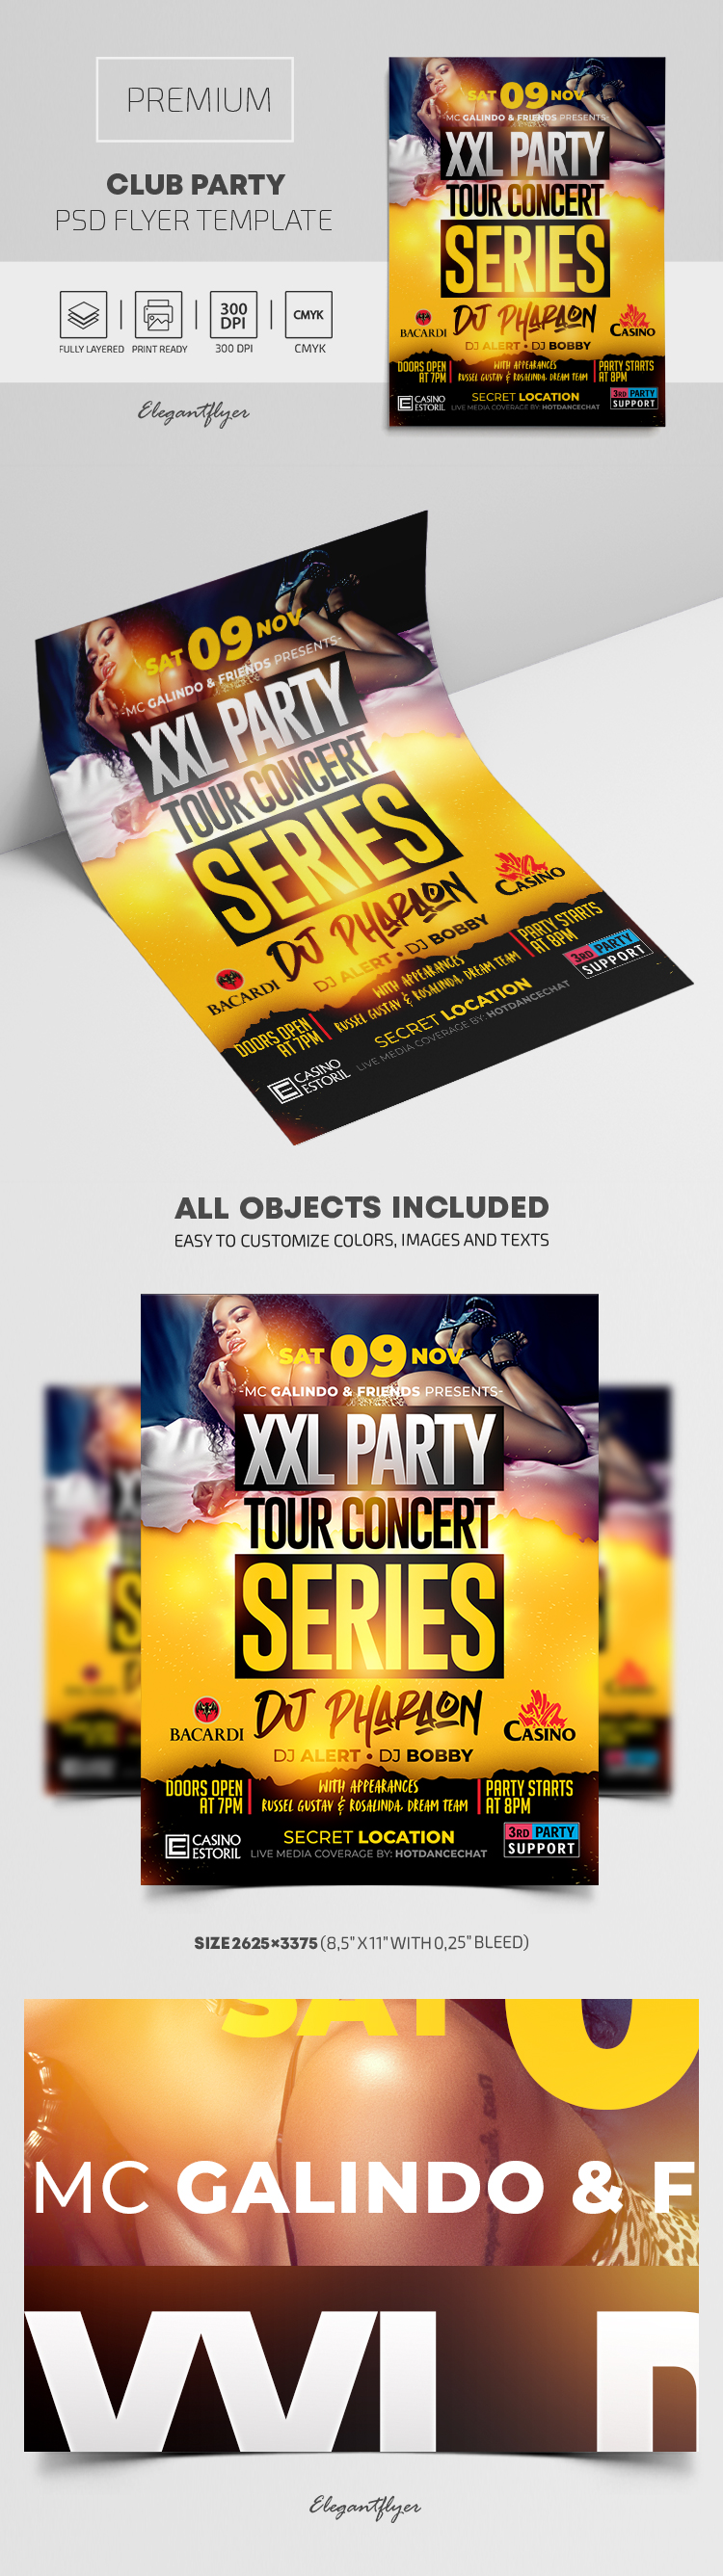 Club Party – Premium PSD Flyer Template